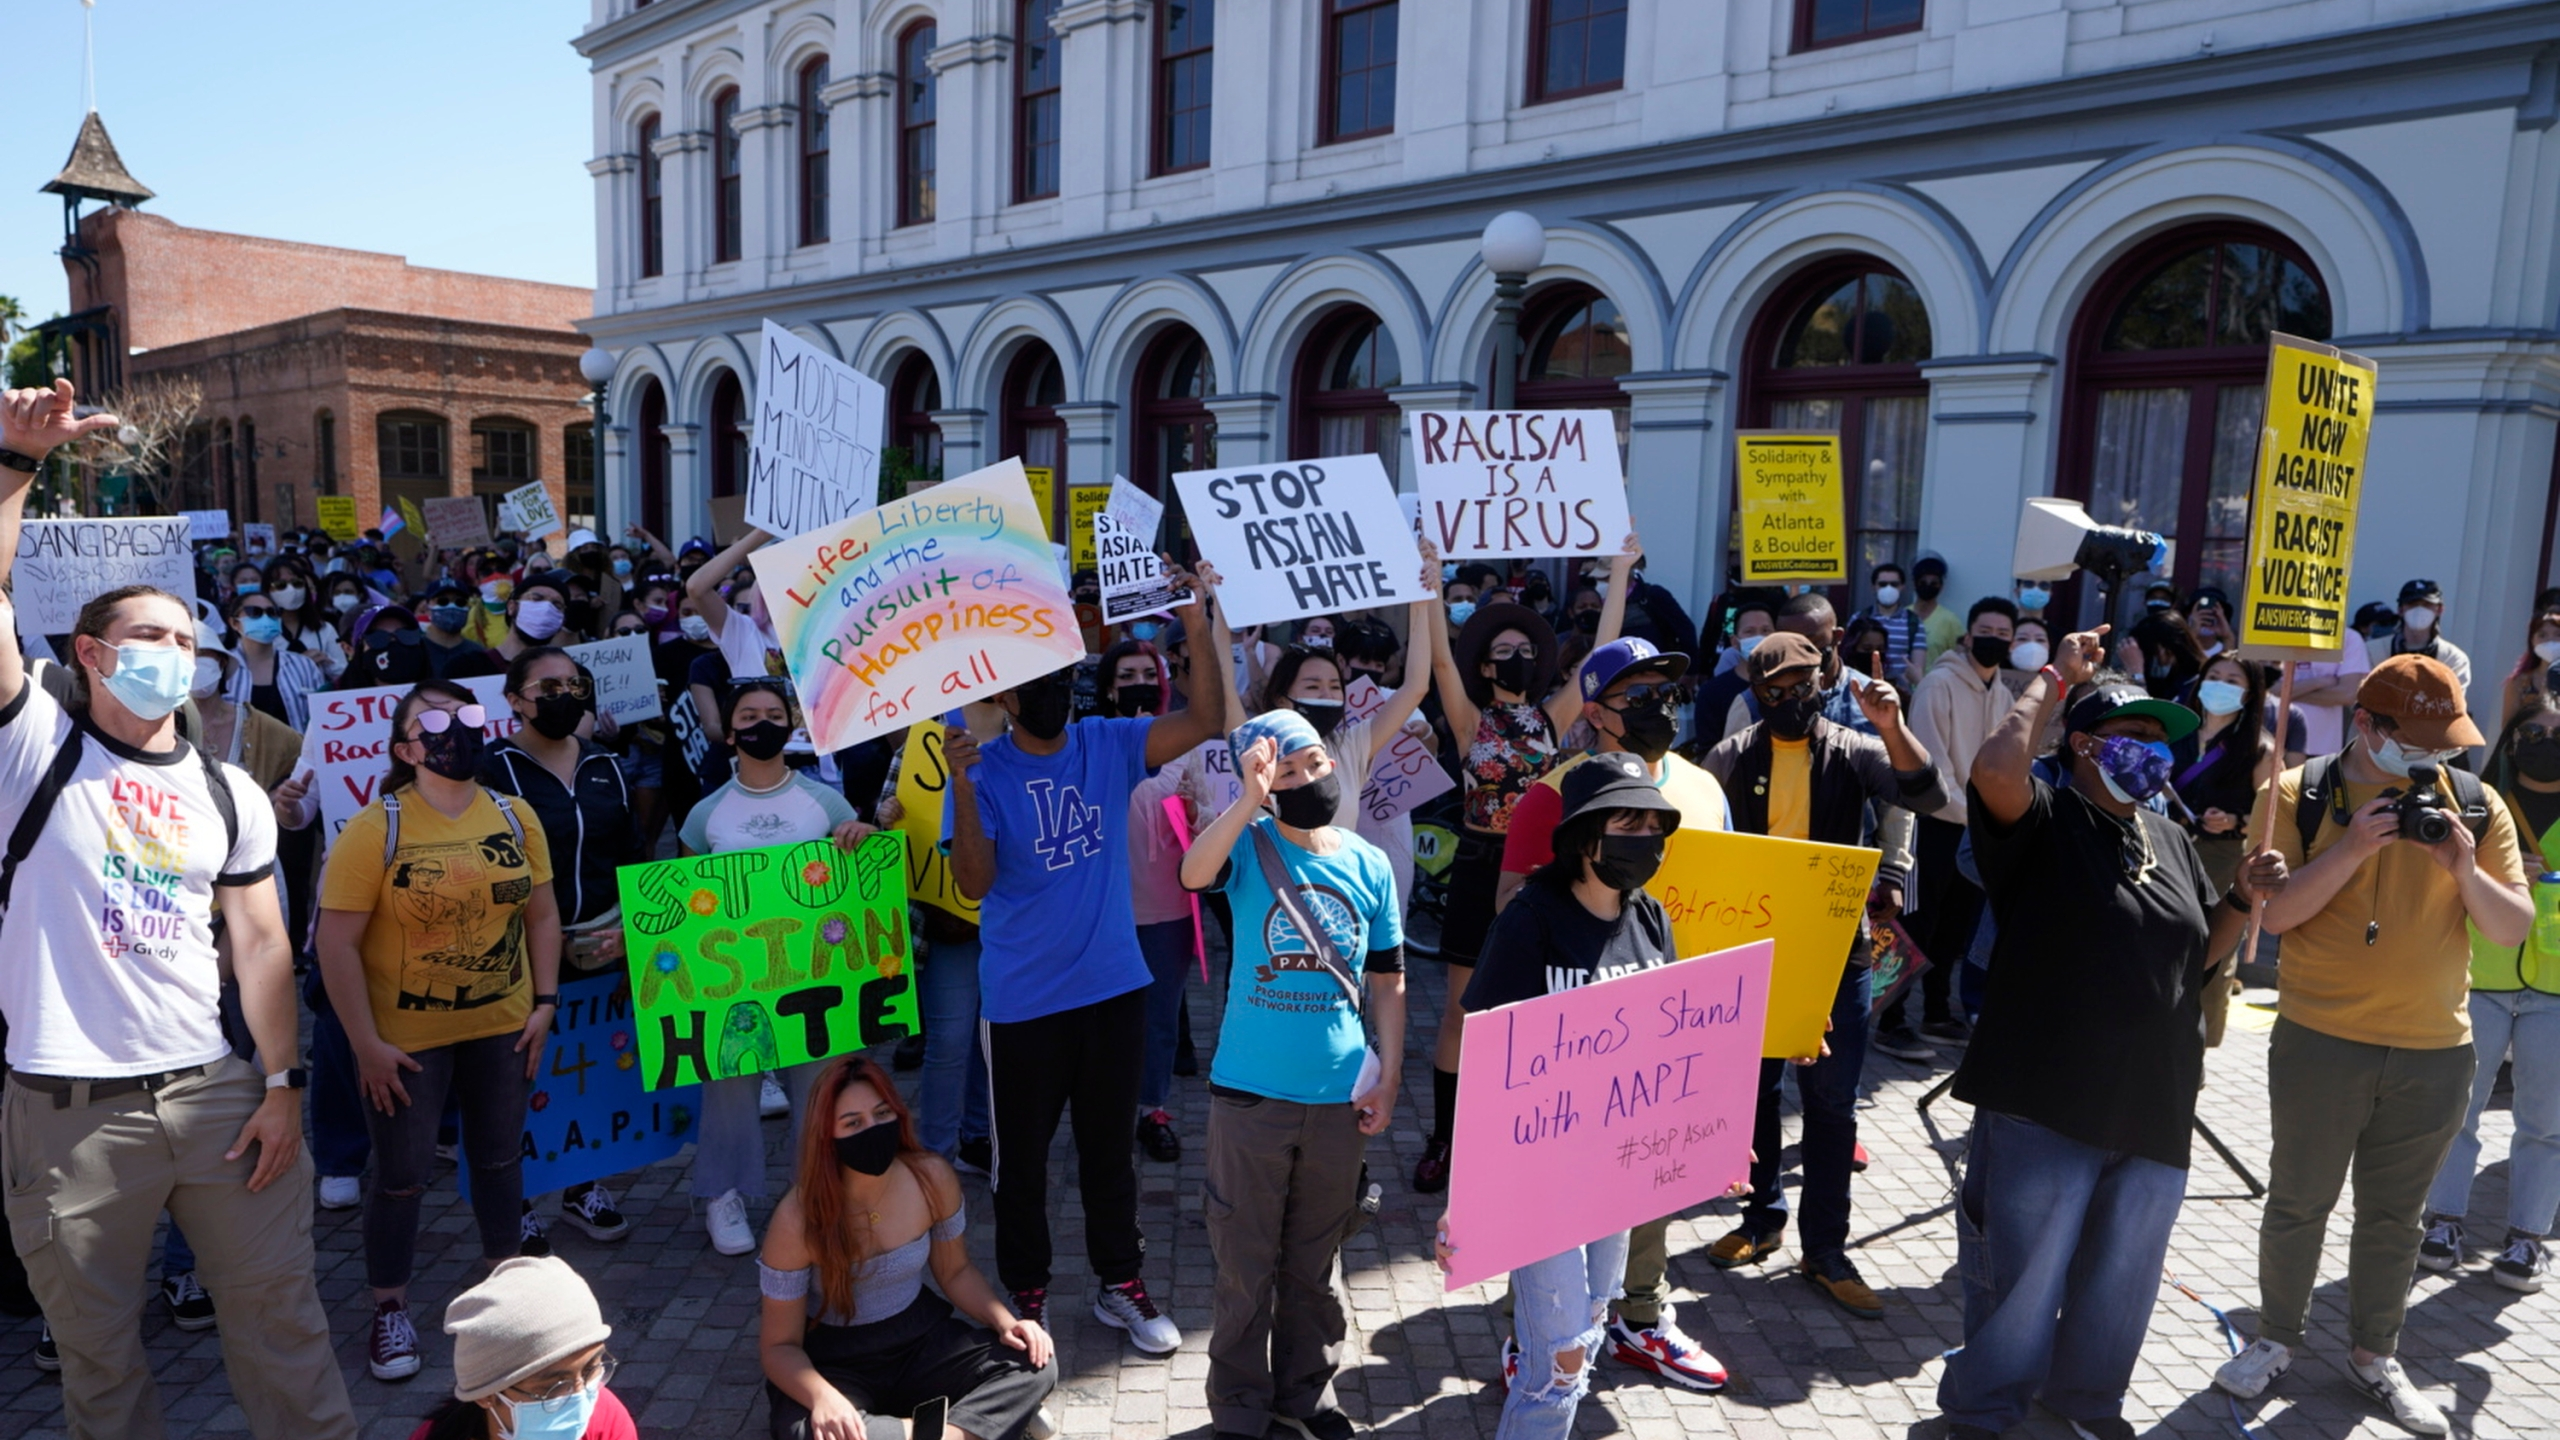 In this March 27, 2021, file photo, demonstrators rally against Asian hate crimes in El Pueblo de Los Angeles, Los Angeles Plaza Park. (AP Photo/Damian Dovarganes, File)